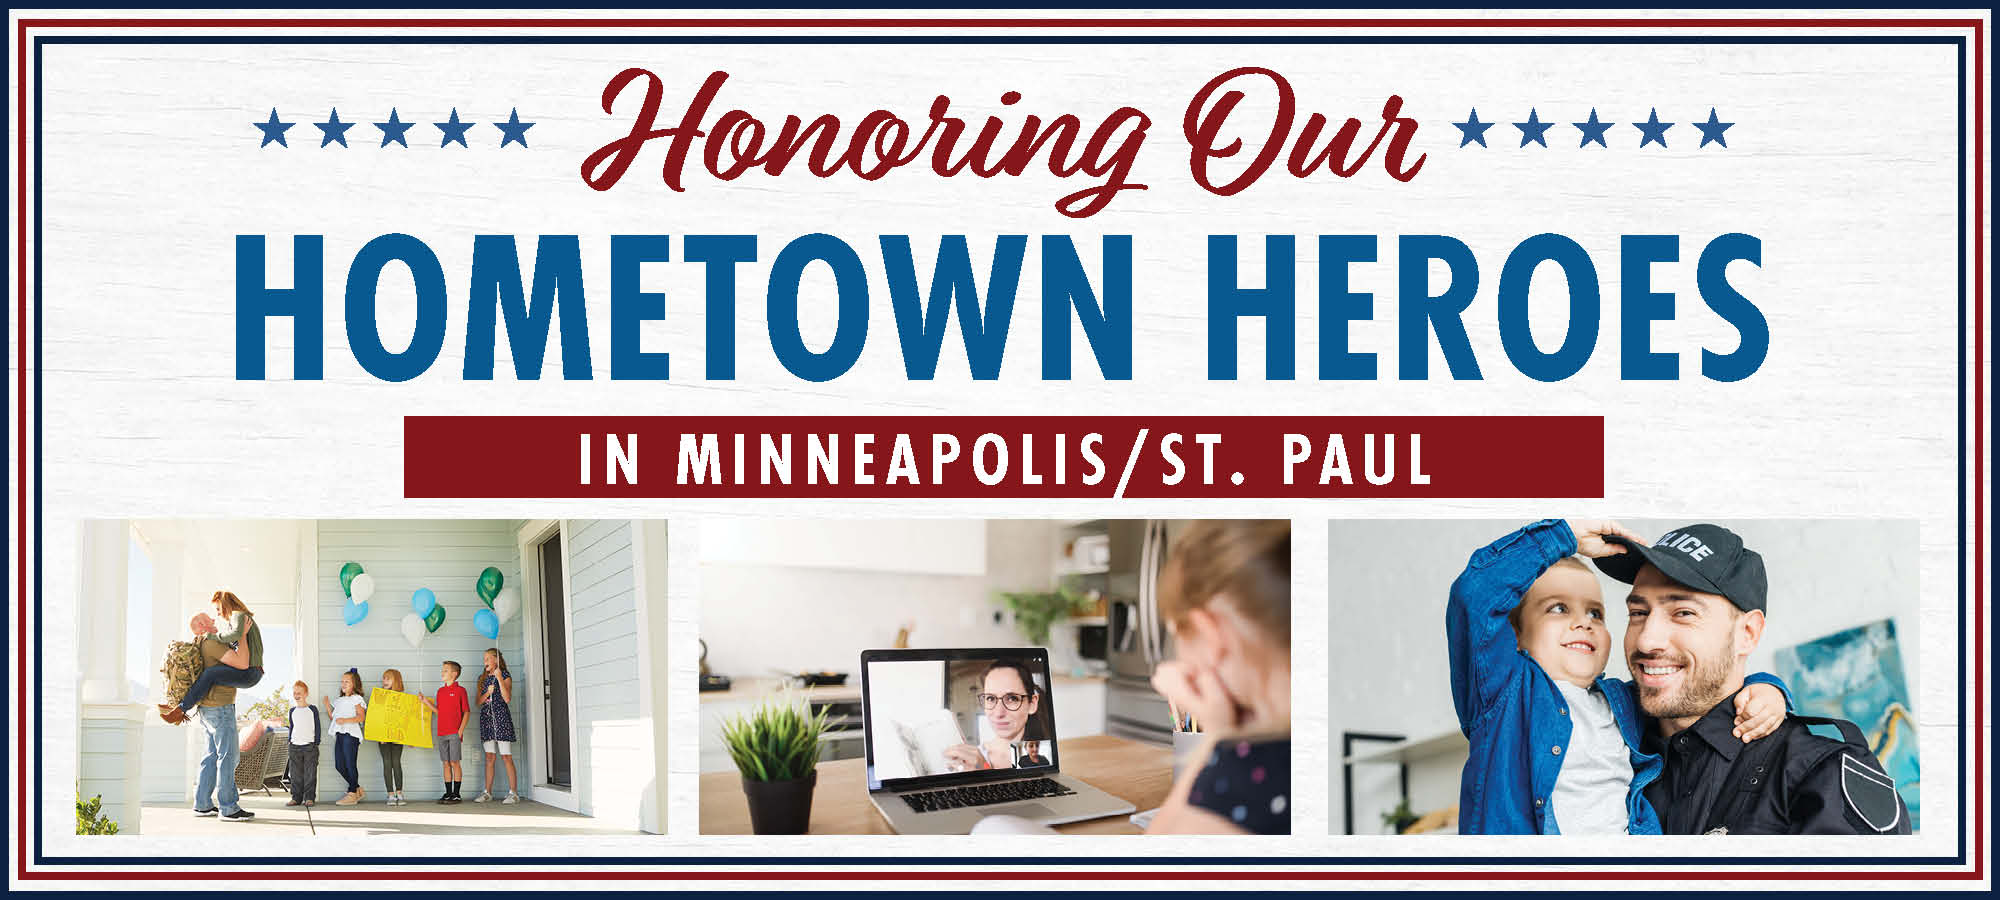 Salute to Hometown Heroes in Minneapolis!